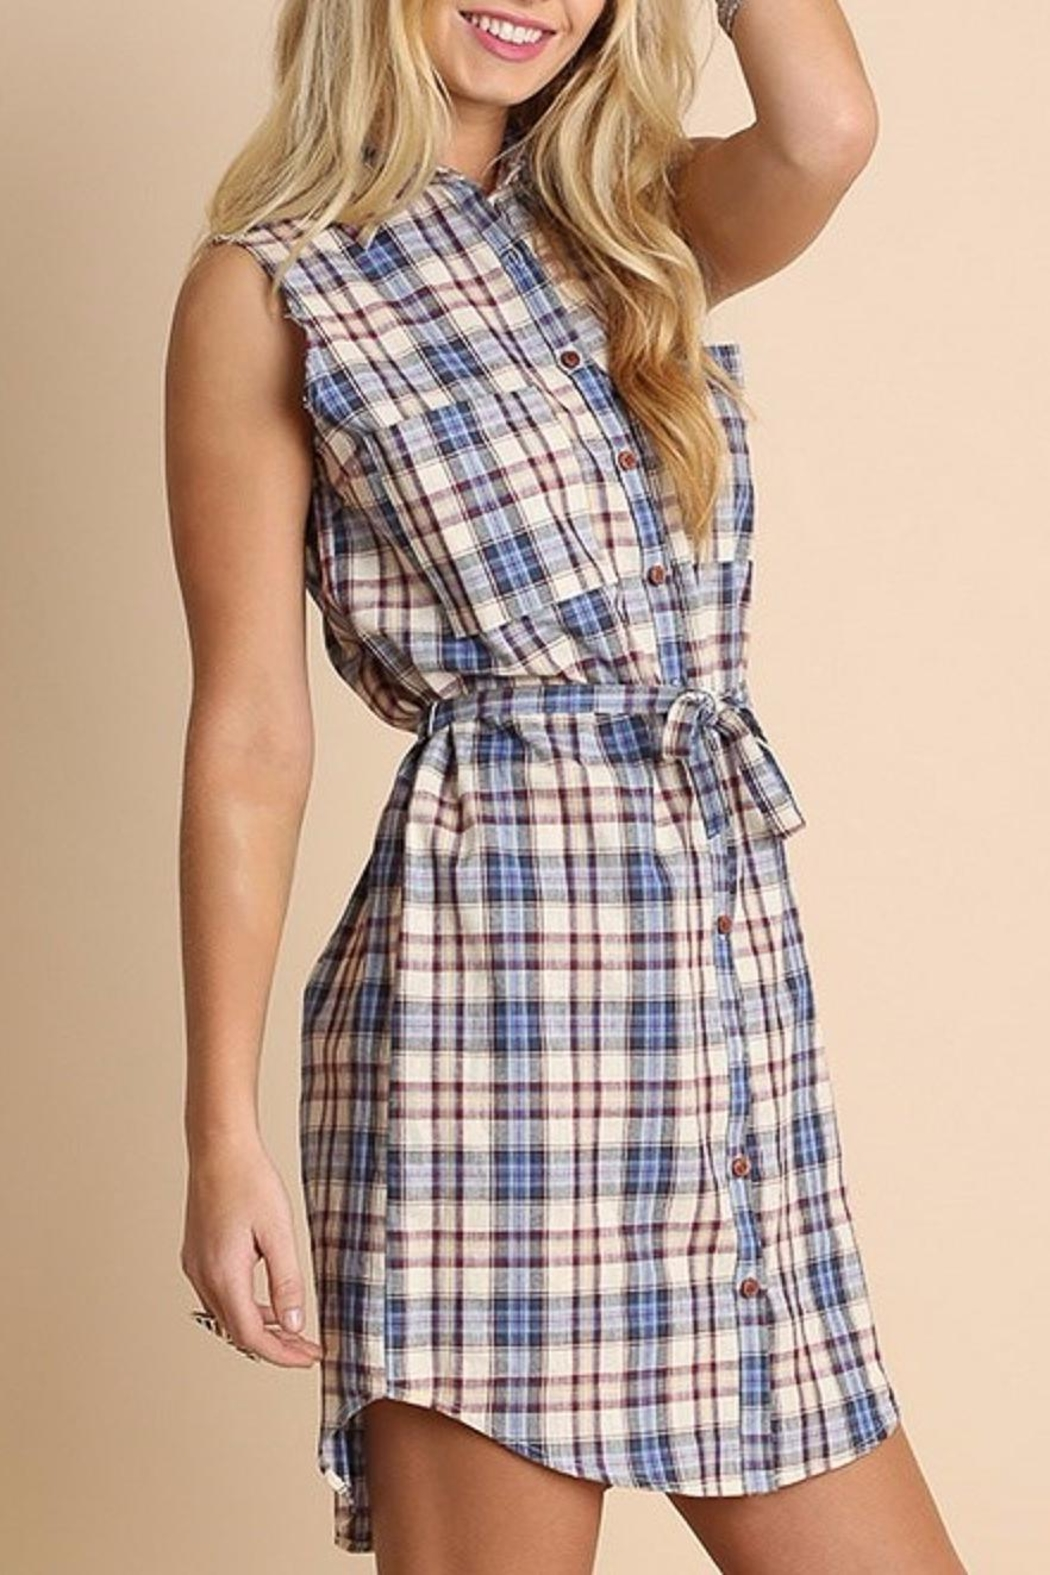 People Outfitter Anytime Plaid Dress - Main Image